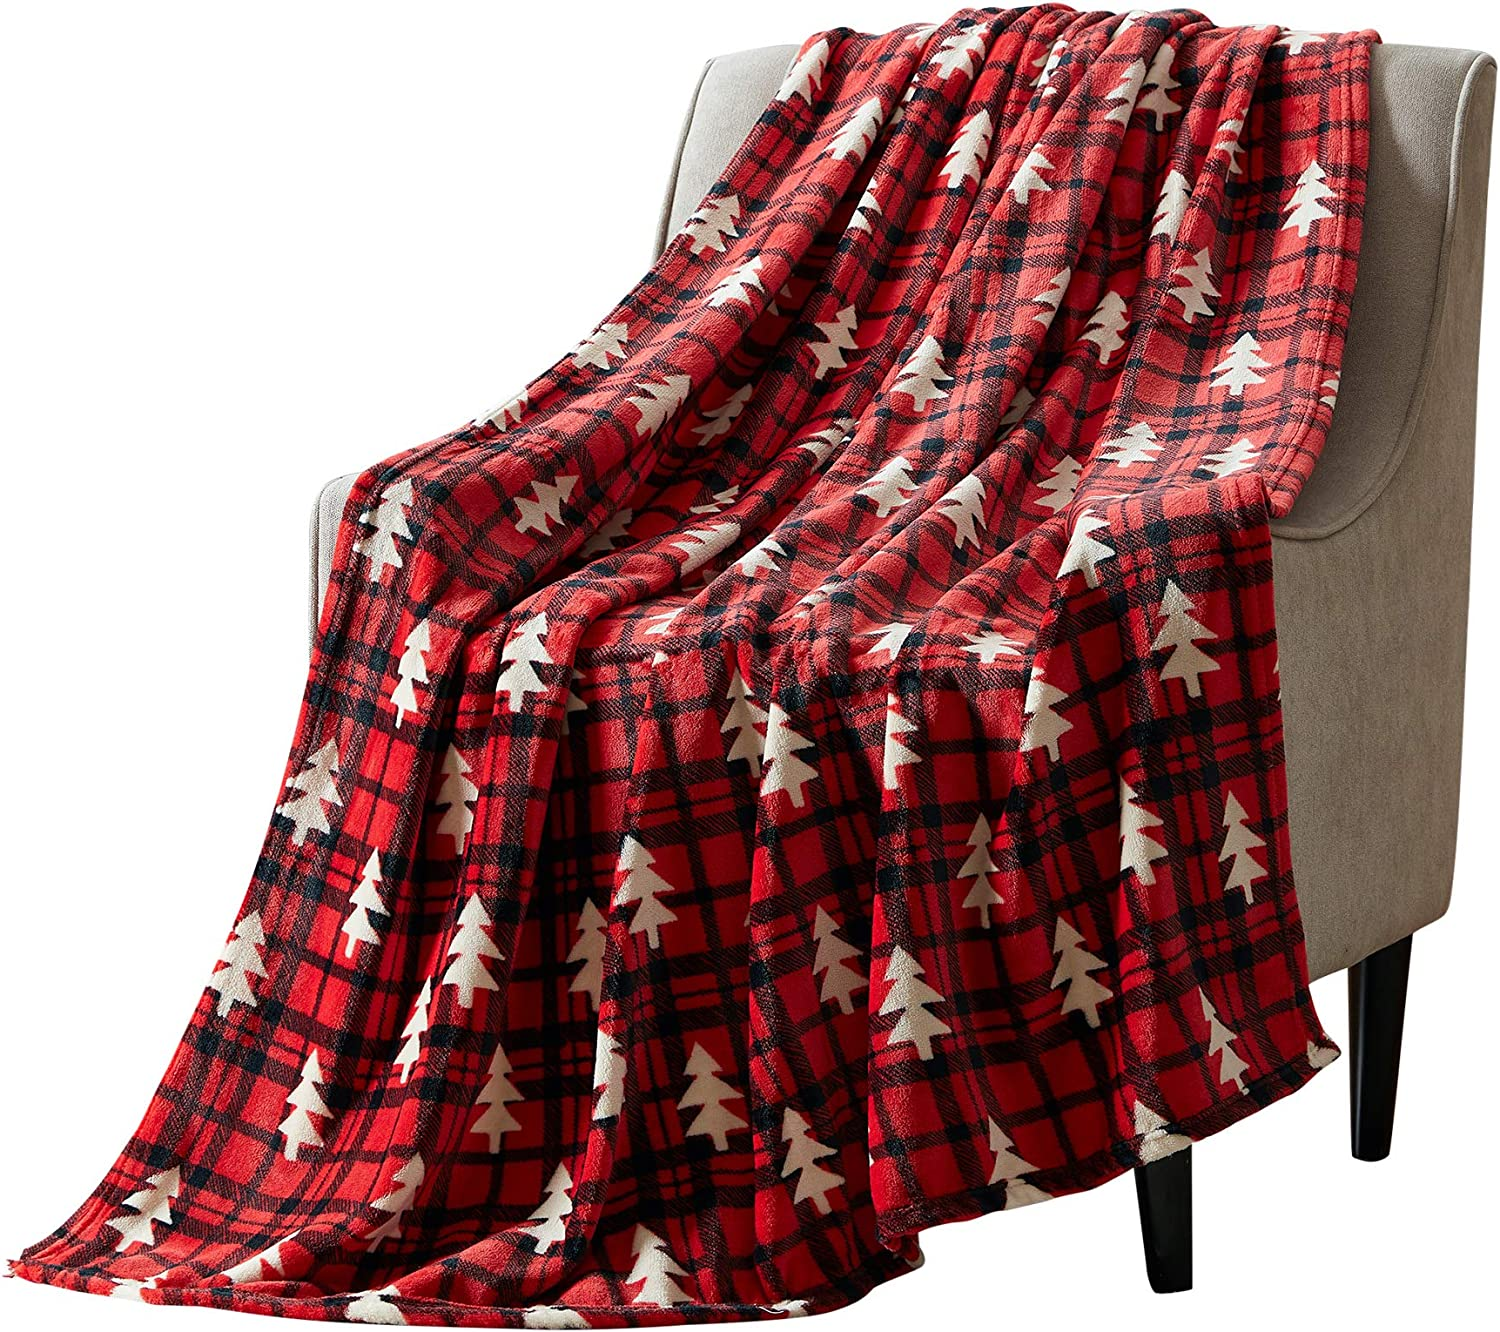 Christmas Tartan Decorative Throw Blanket: Popular A surprise price is realized overseas Soft Comfy wit Fleece